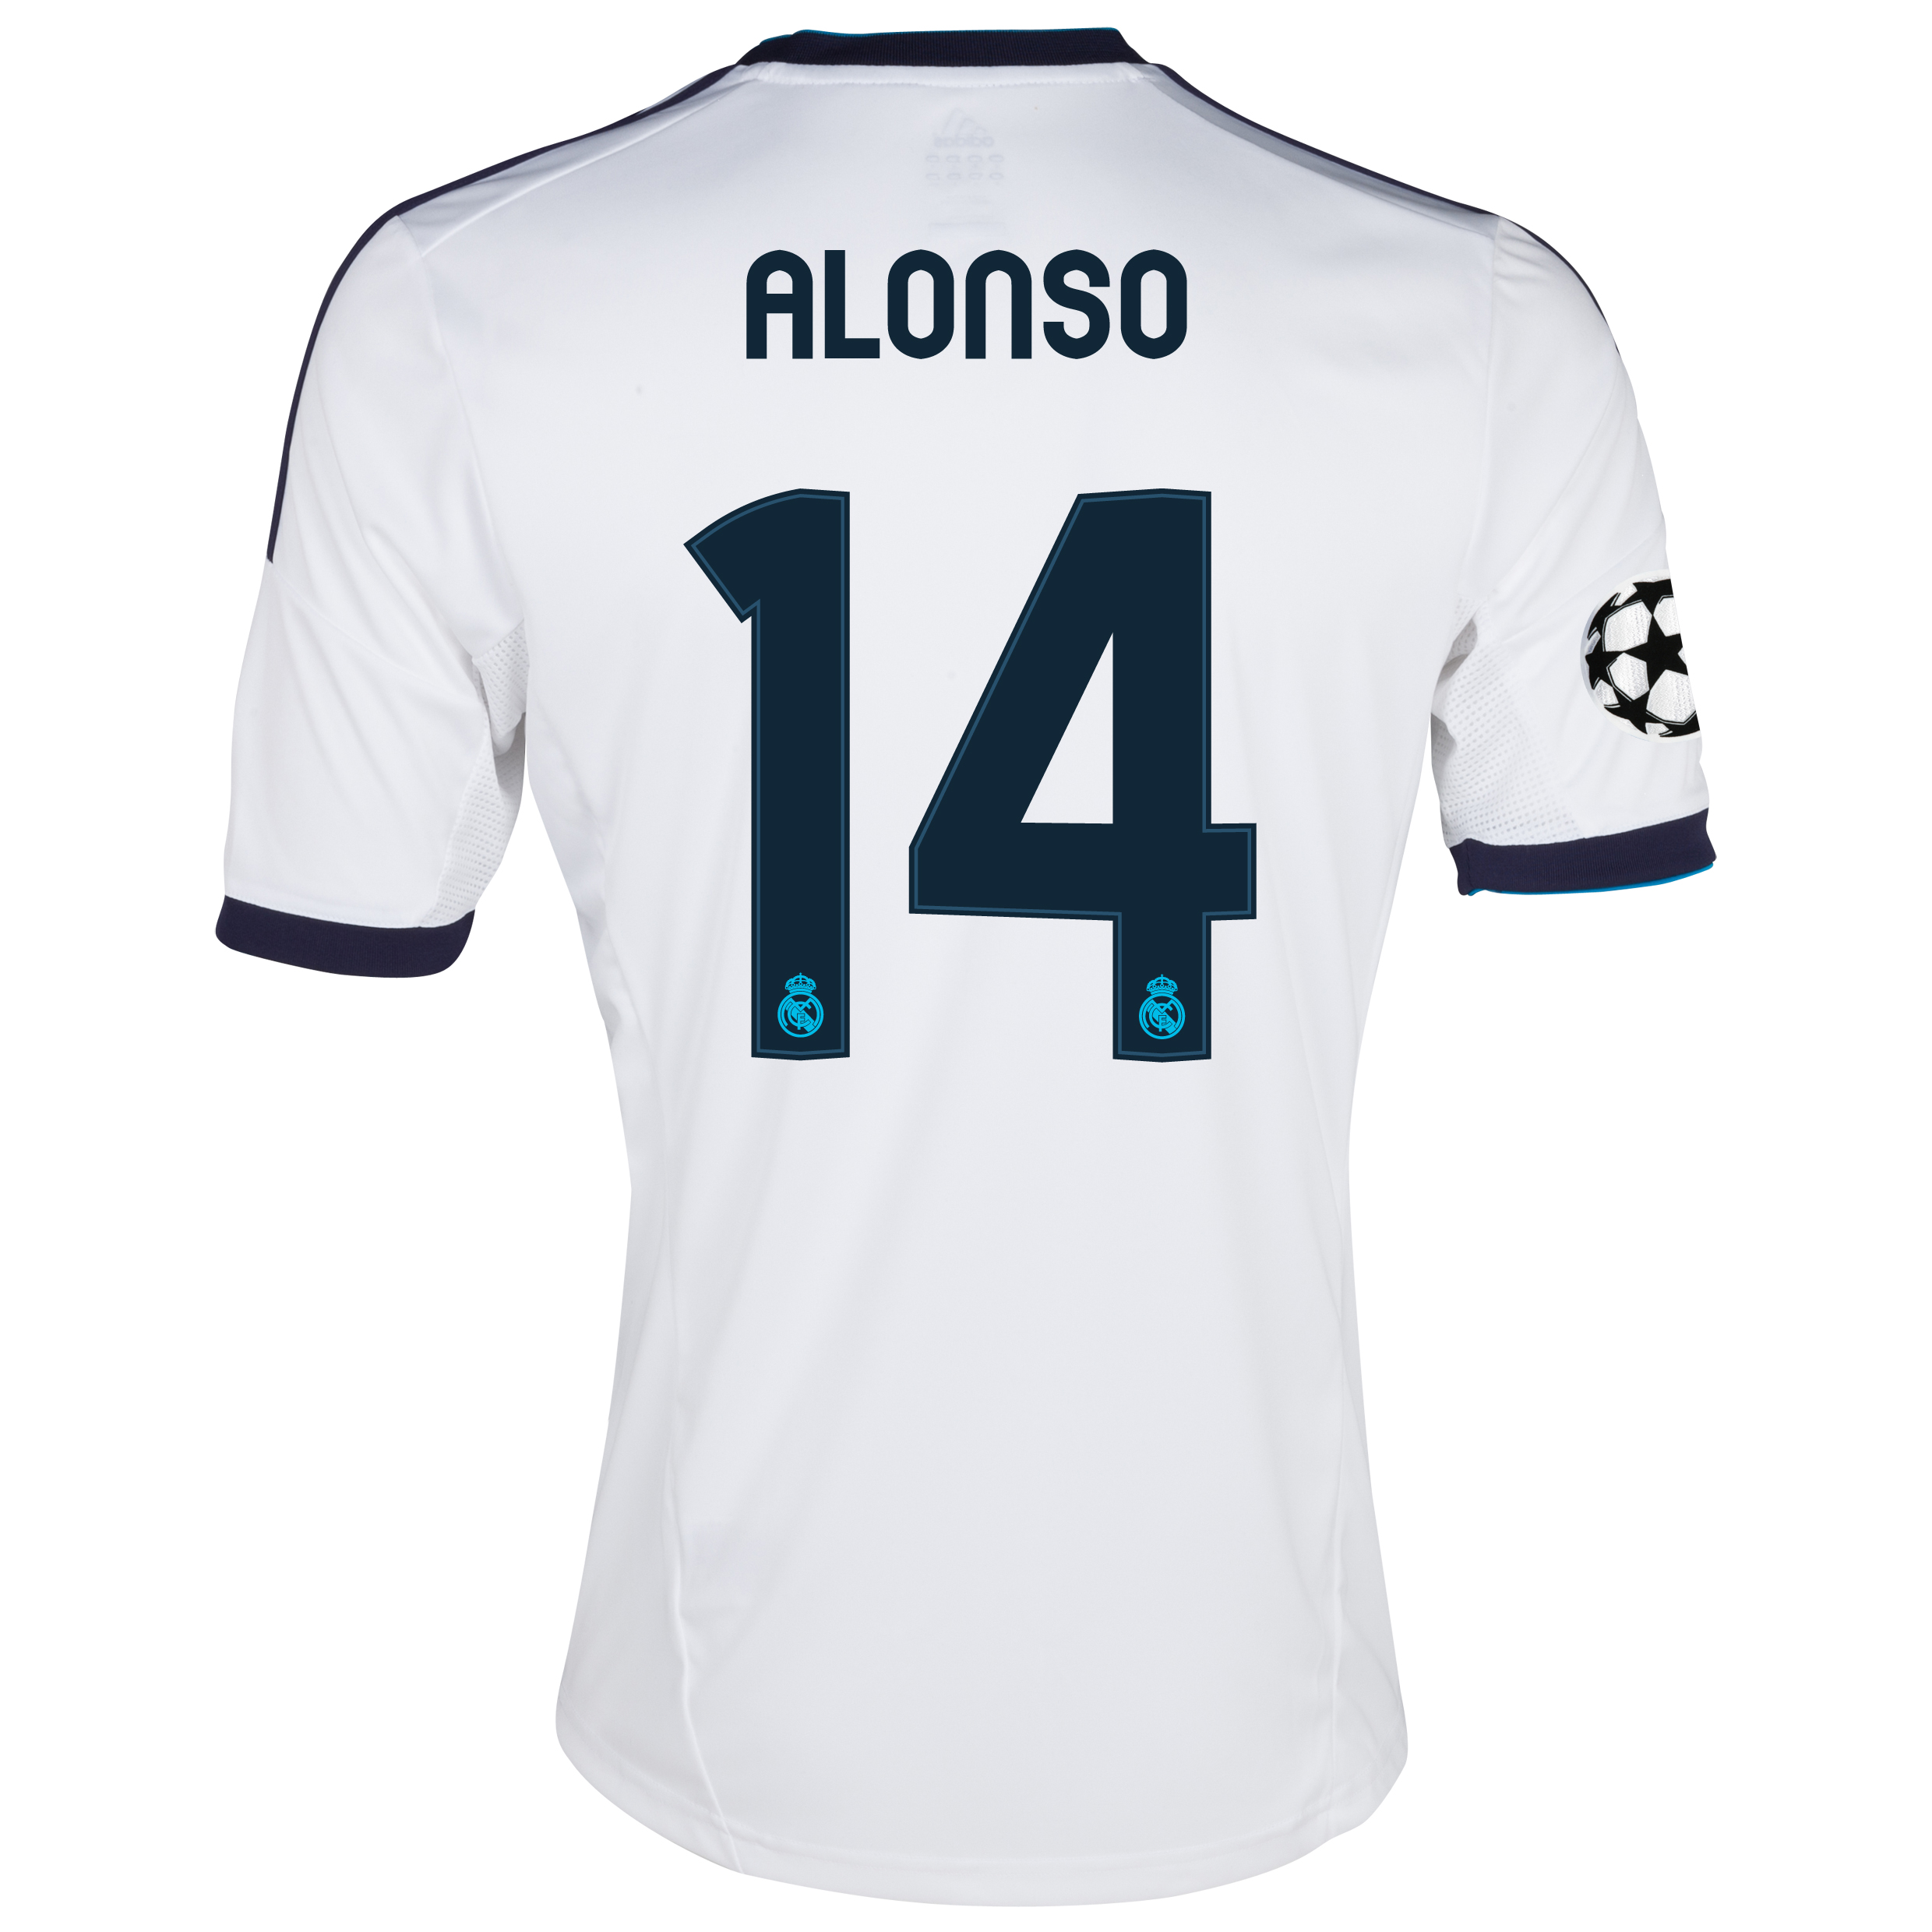 Camiseta local UEFA Champions League Real Madrid 2012/13 con impresión 14 Alonso